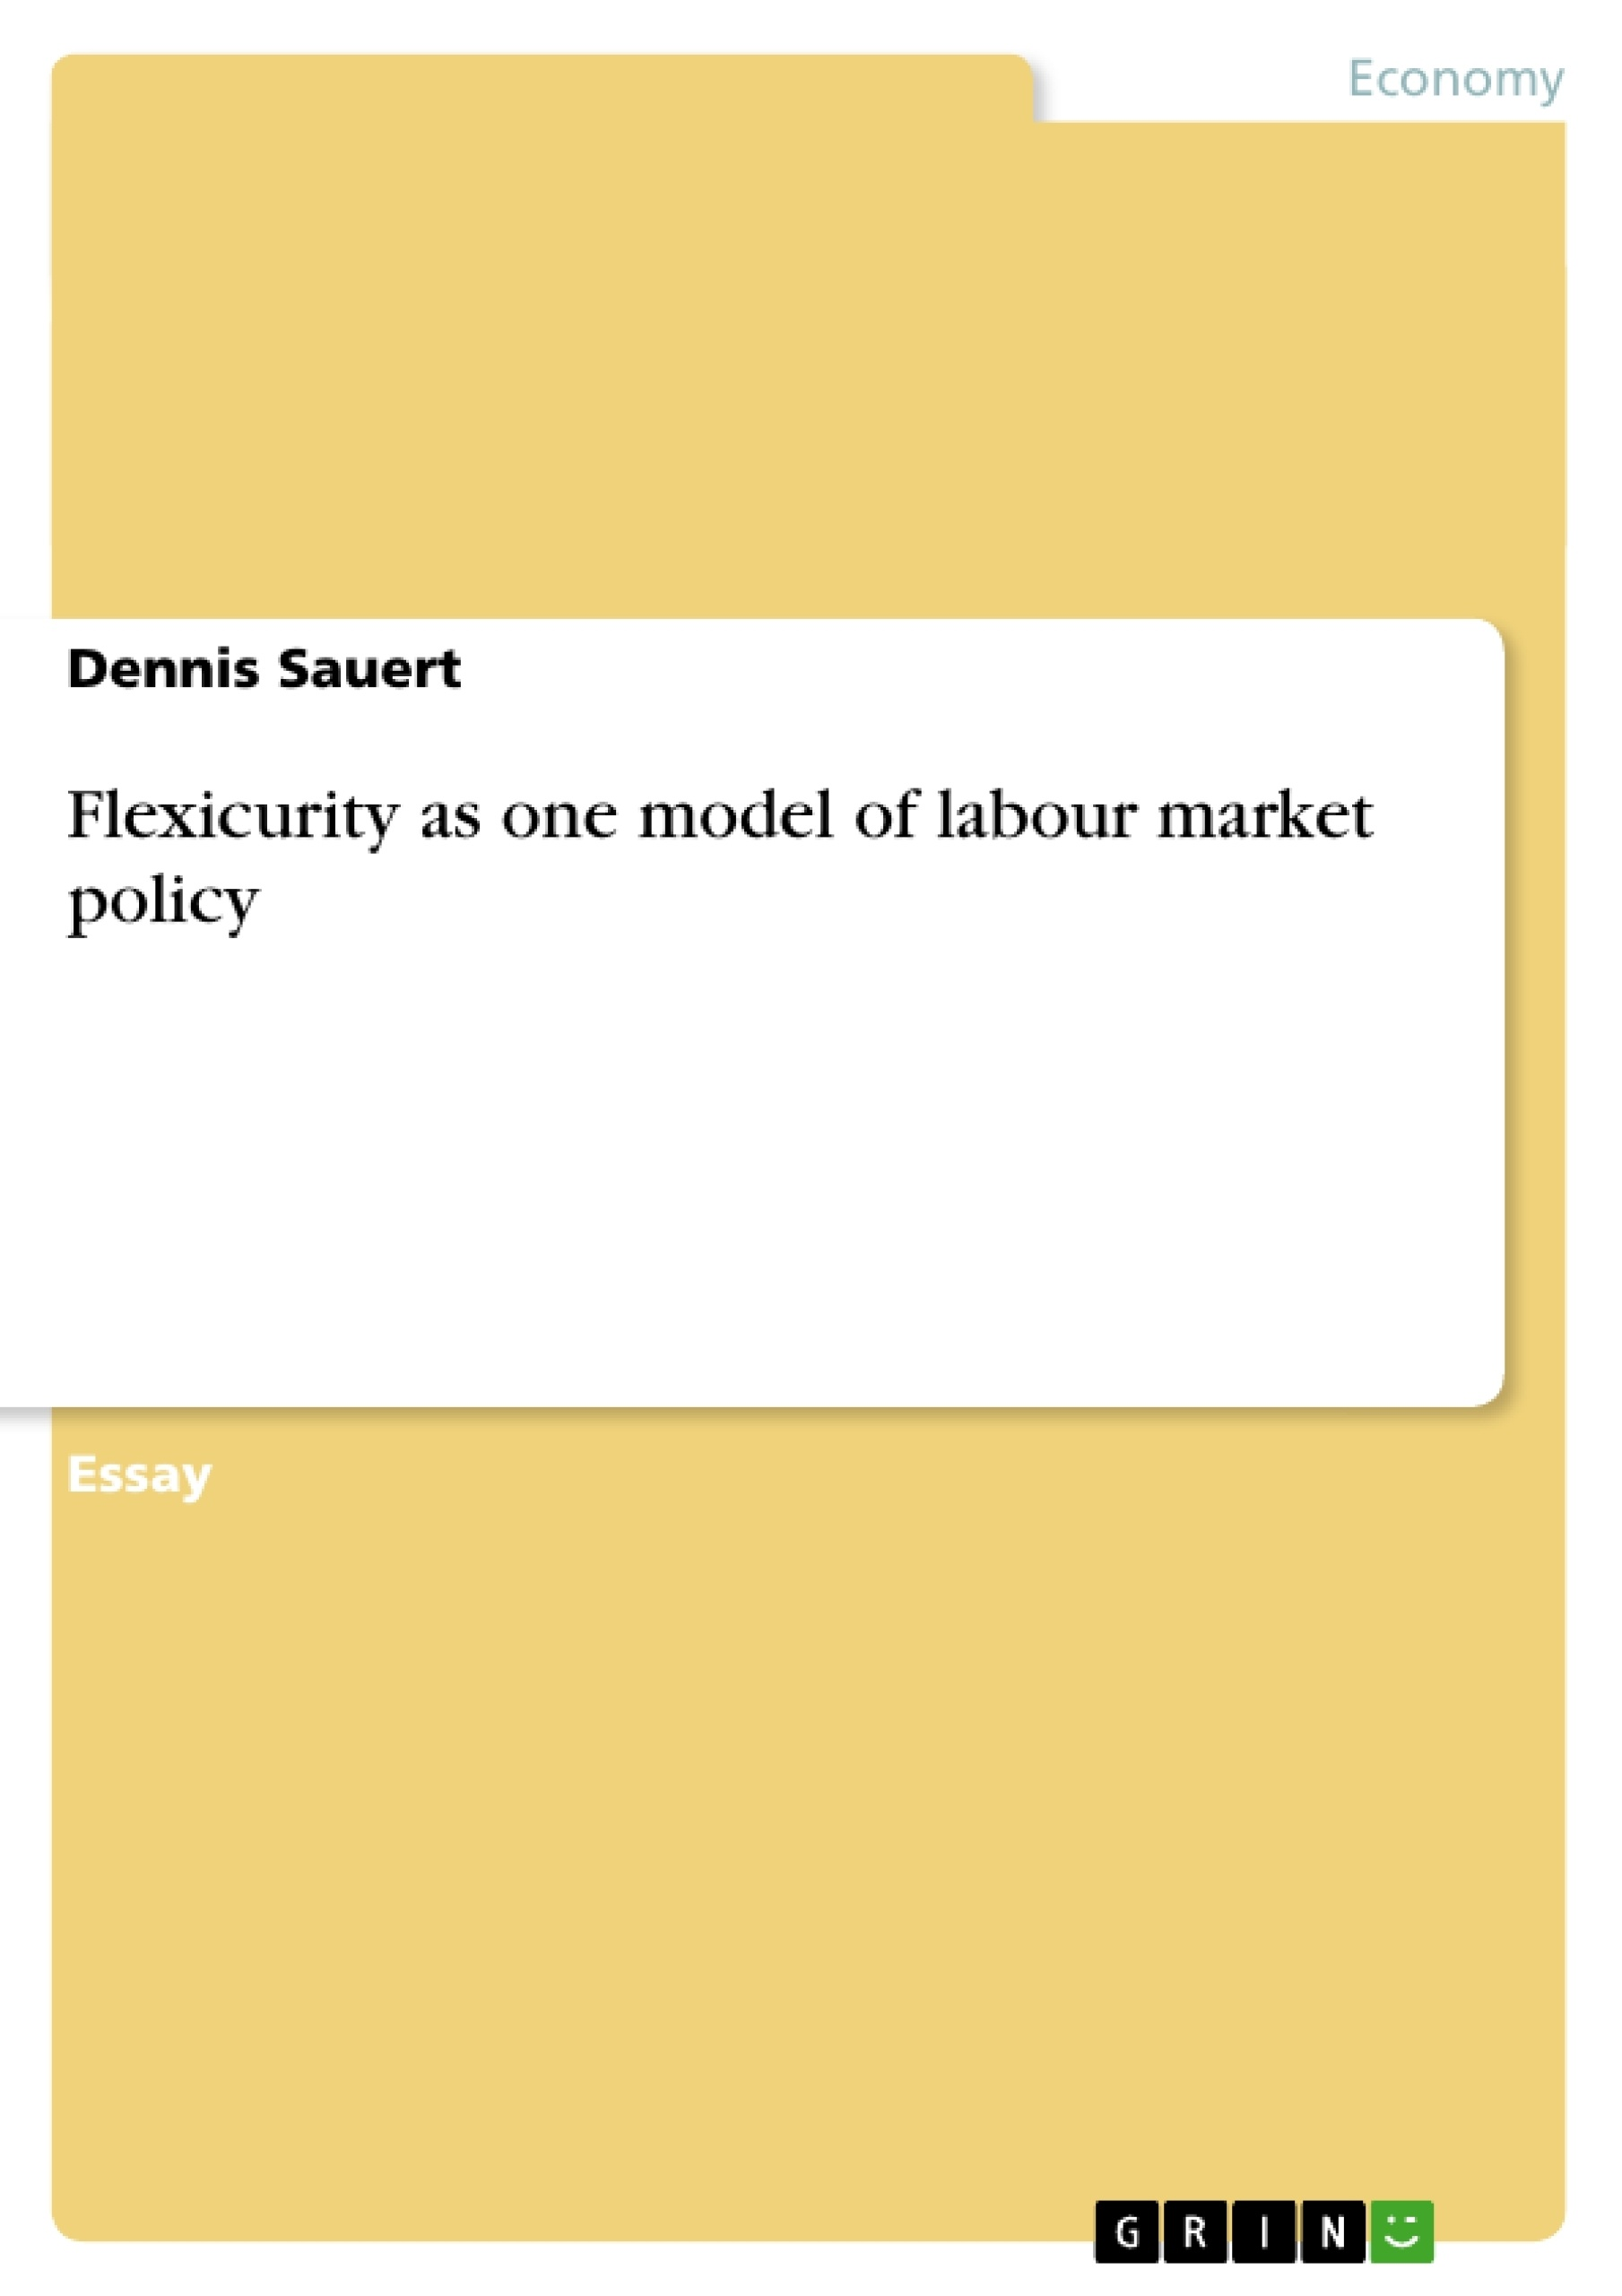 Title: Flexicurity as one model of labour market policy